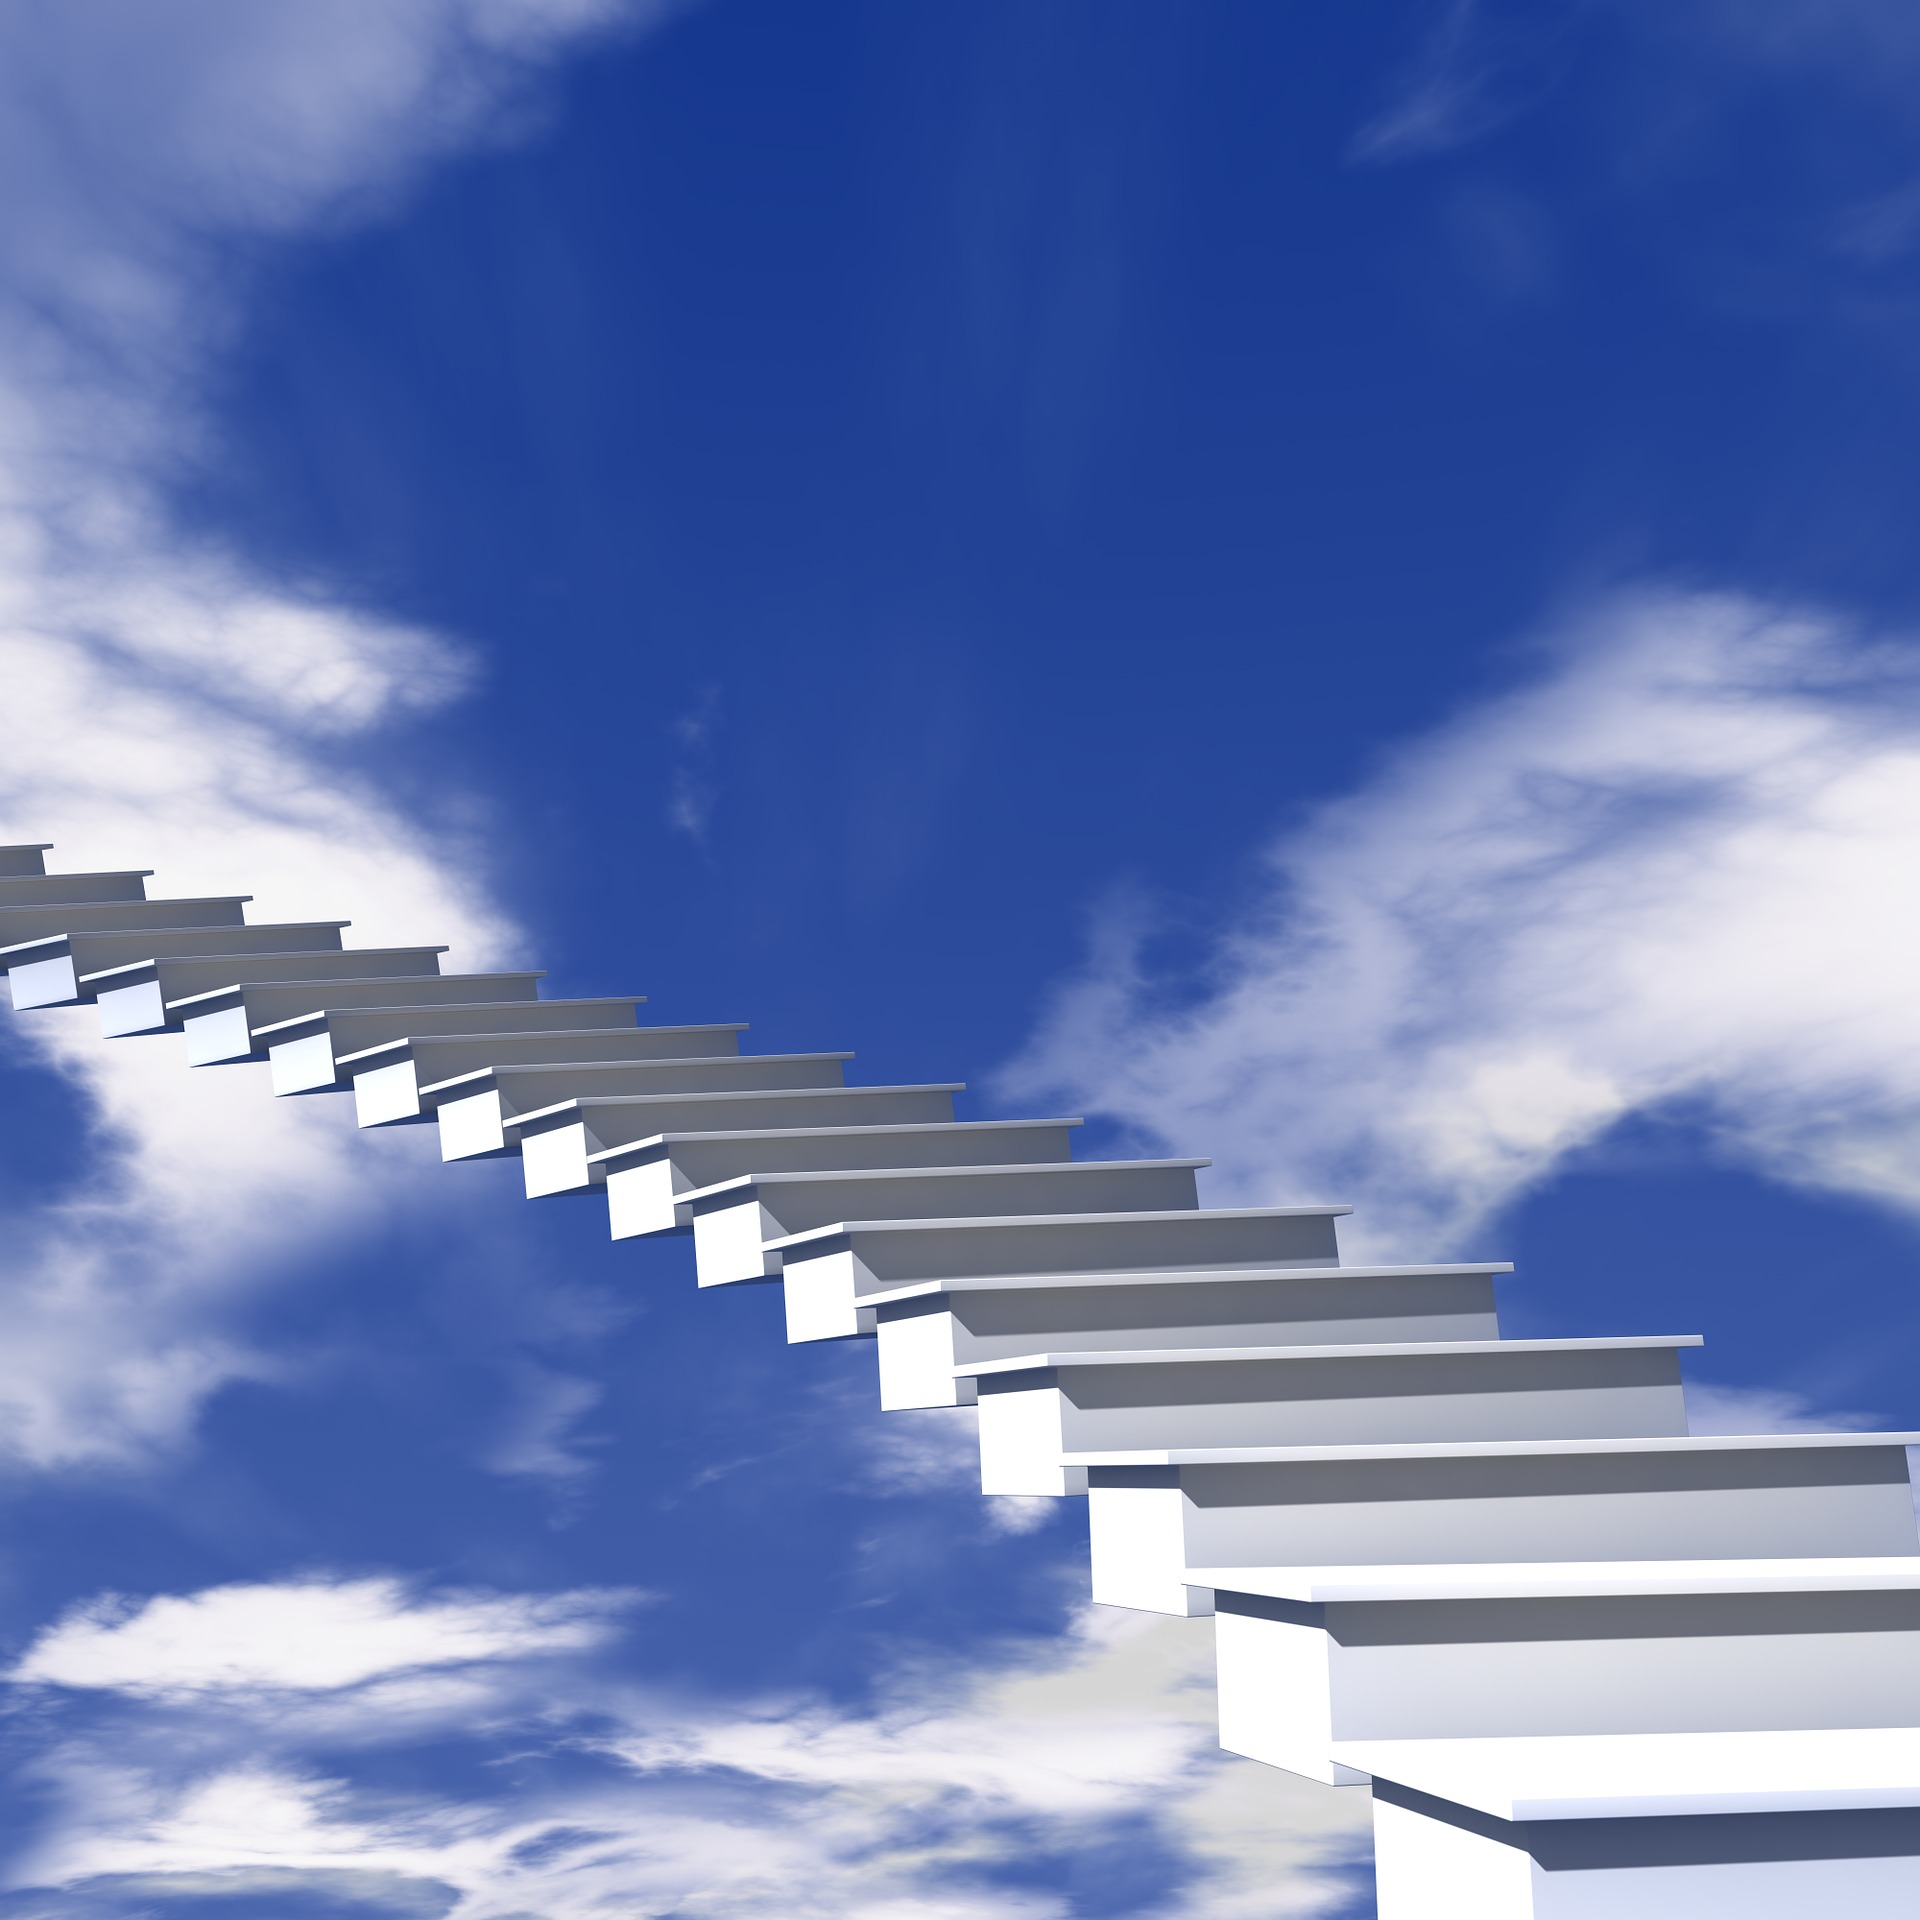 cloud_escaleras_nubes__cloud__neteris.jpg